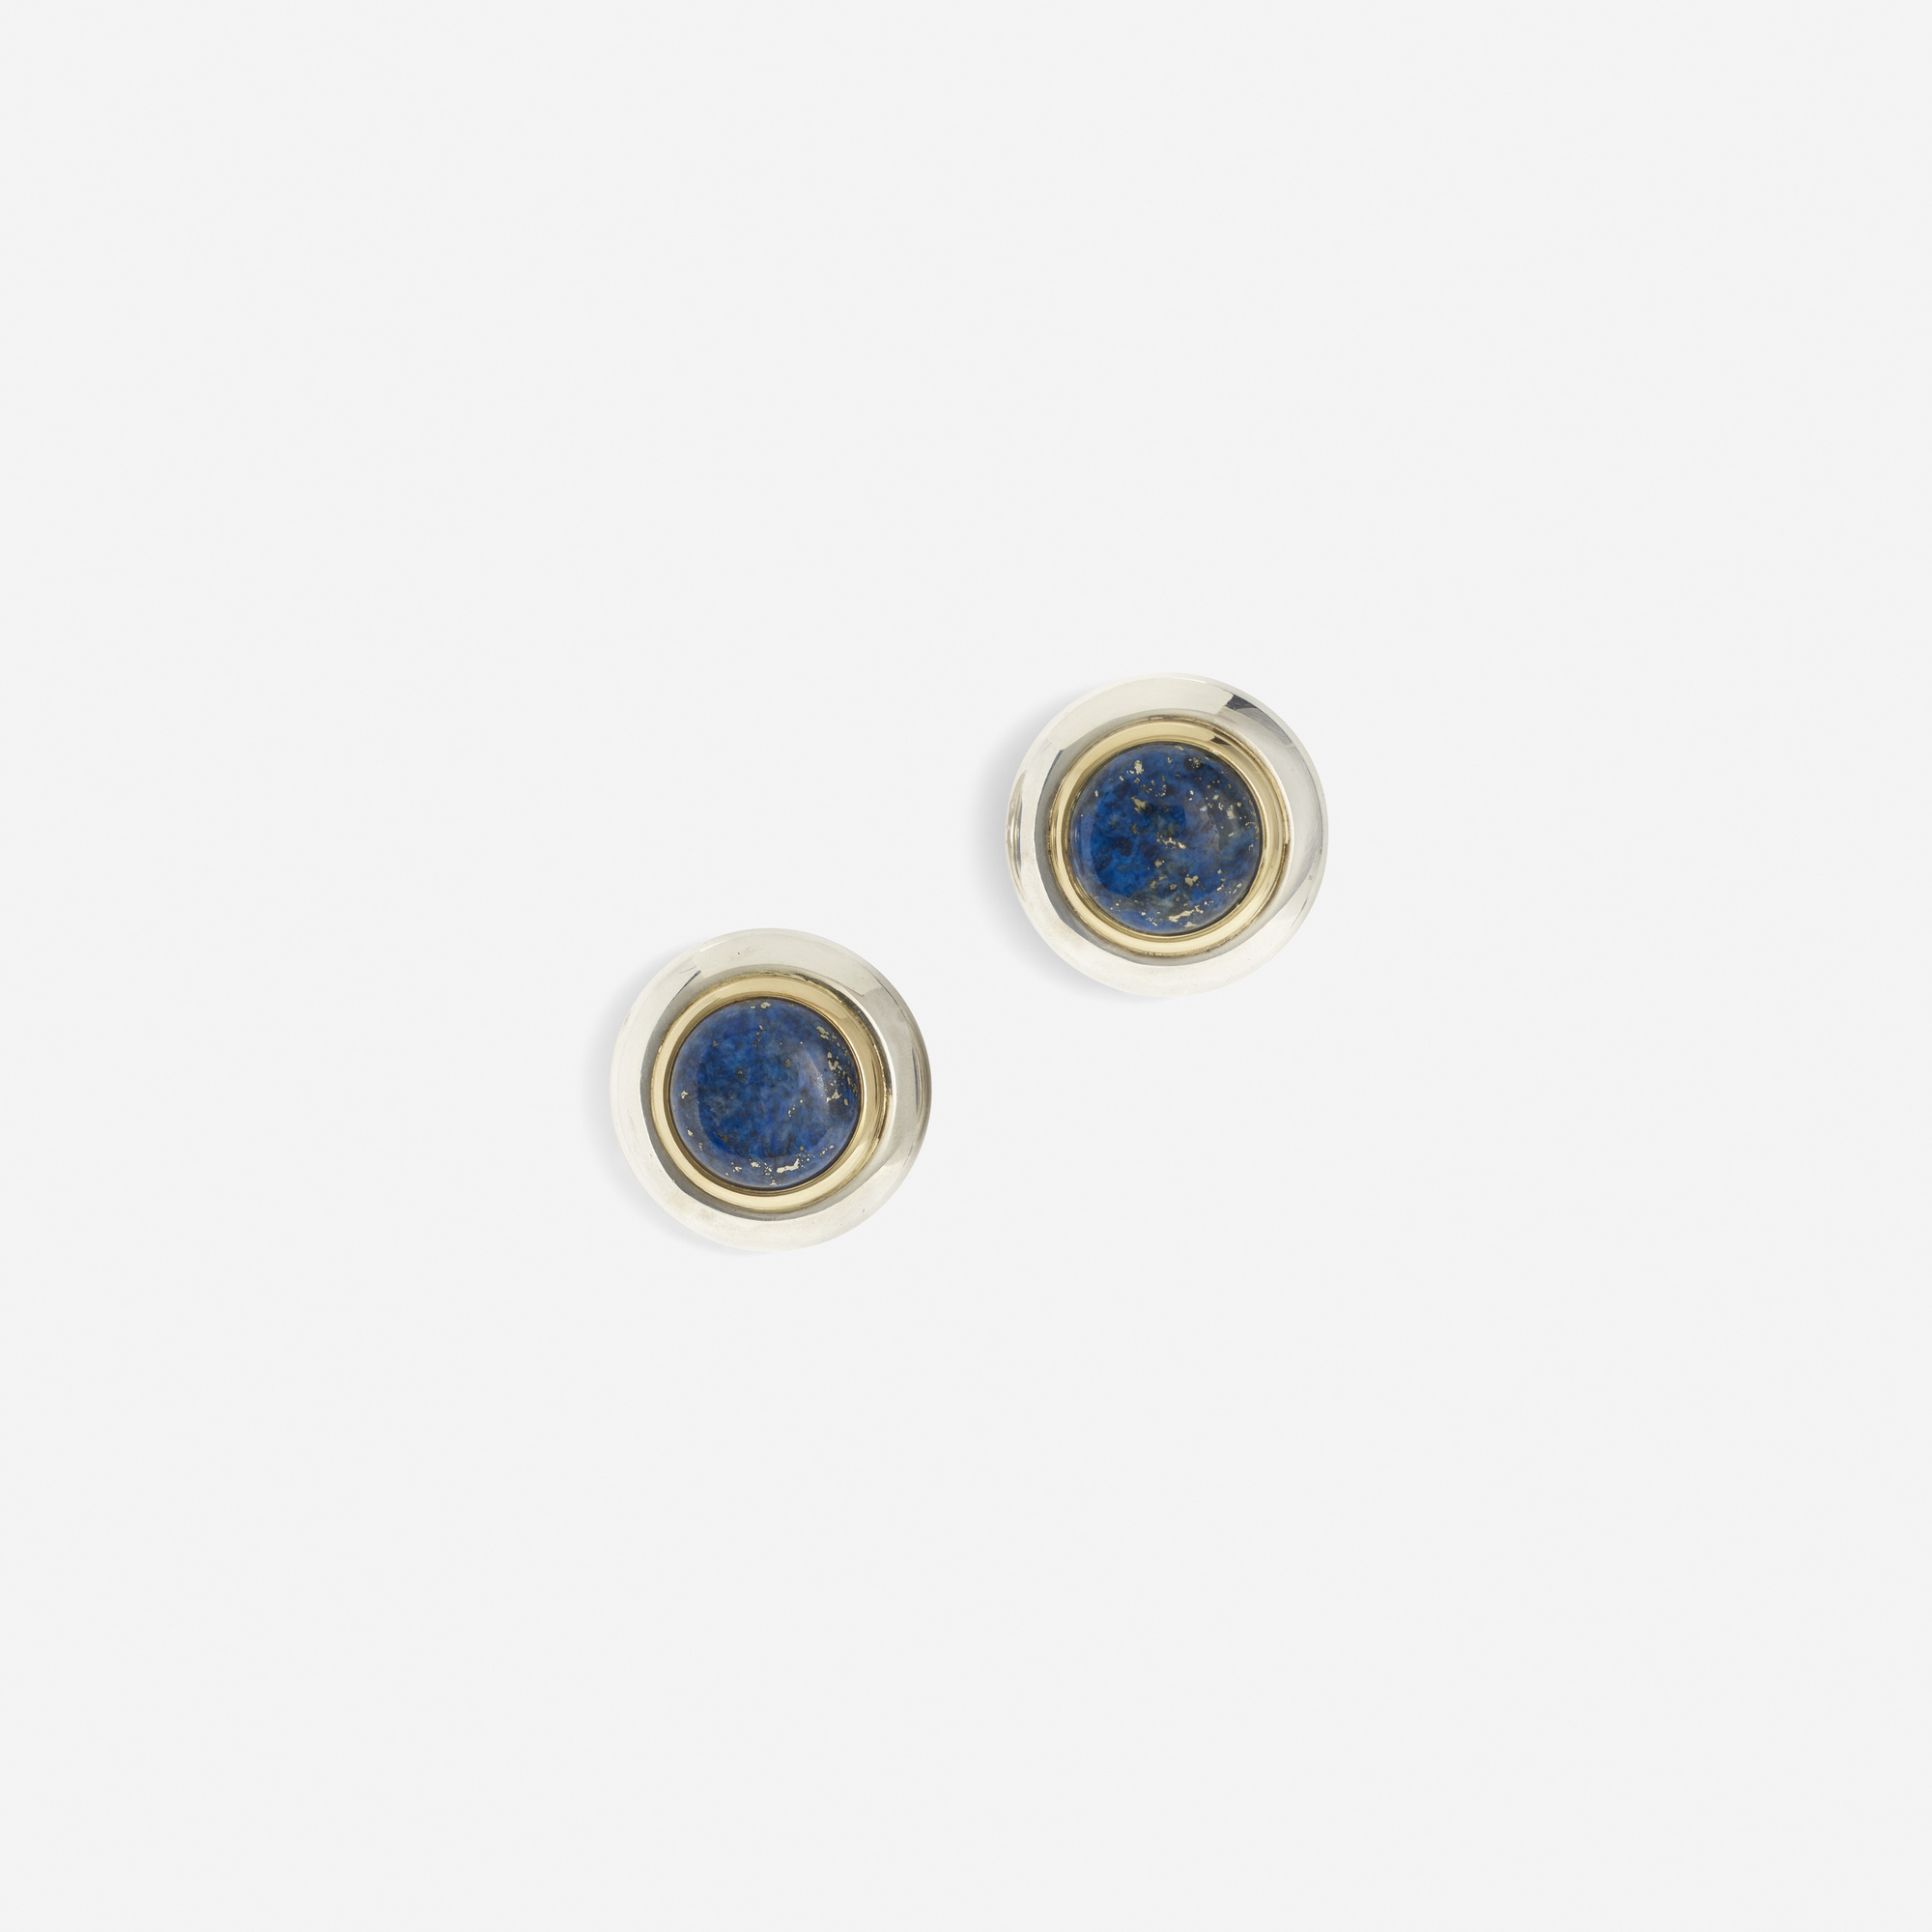 194: Gucci / A pair of sterling silver, gold and lapis lazuli button earrings (1 of 1)